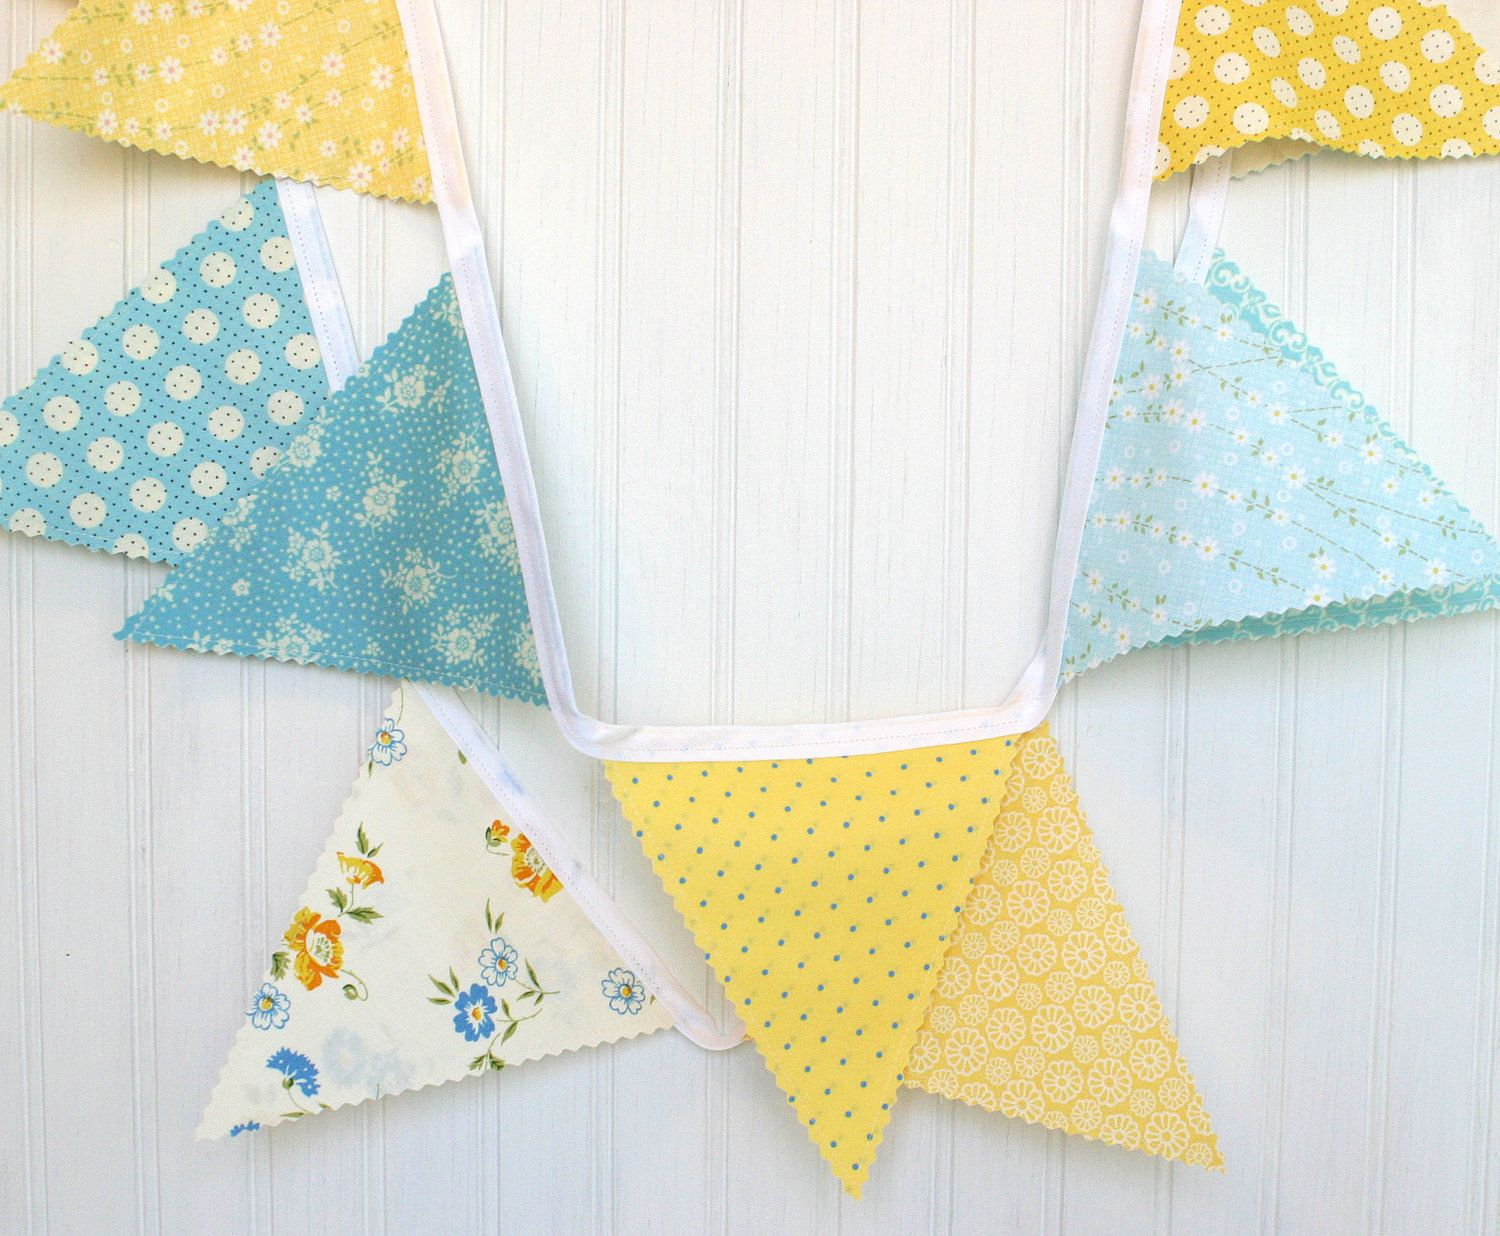 Bunting fabric banner fabric flags yellow and aqua blue flowers